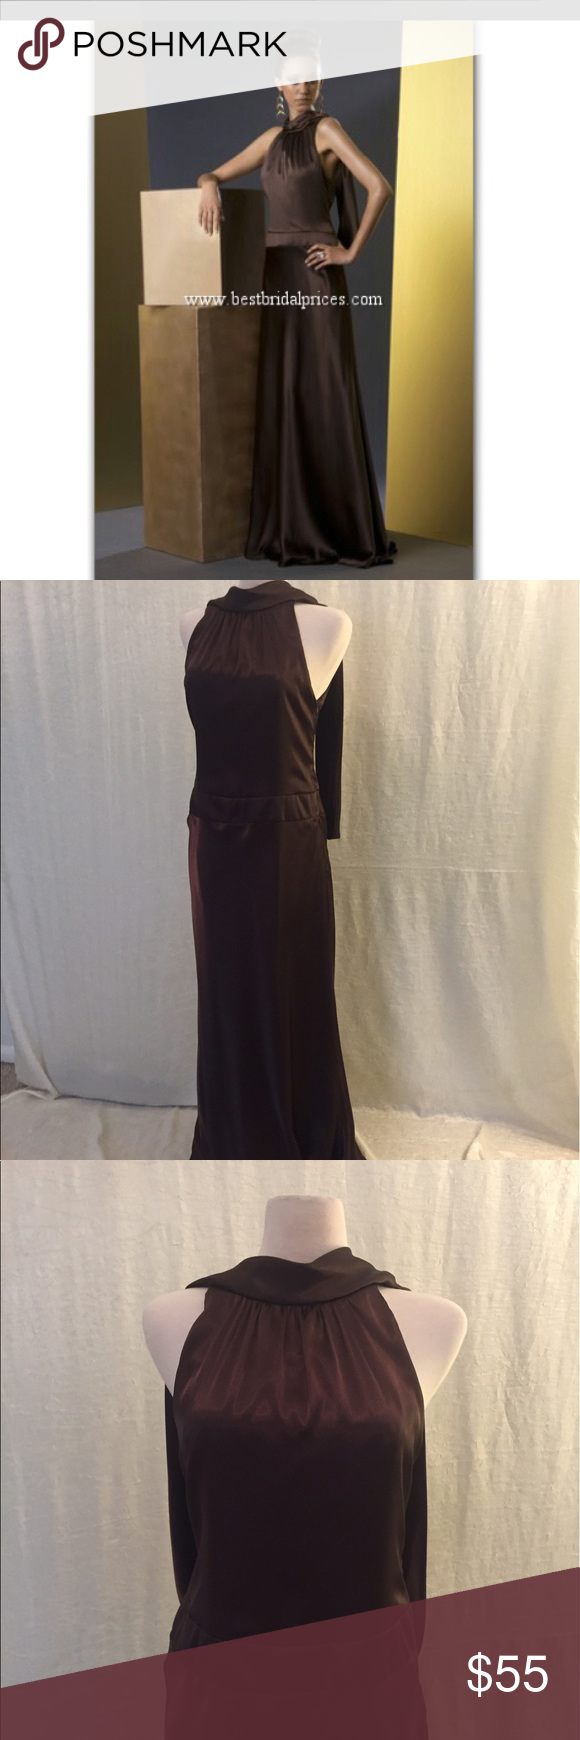 Evening prom dress styled after j lo style bari jay bari and mink